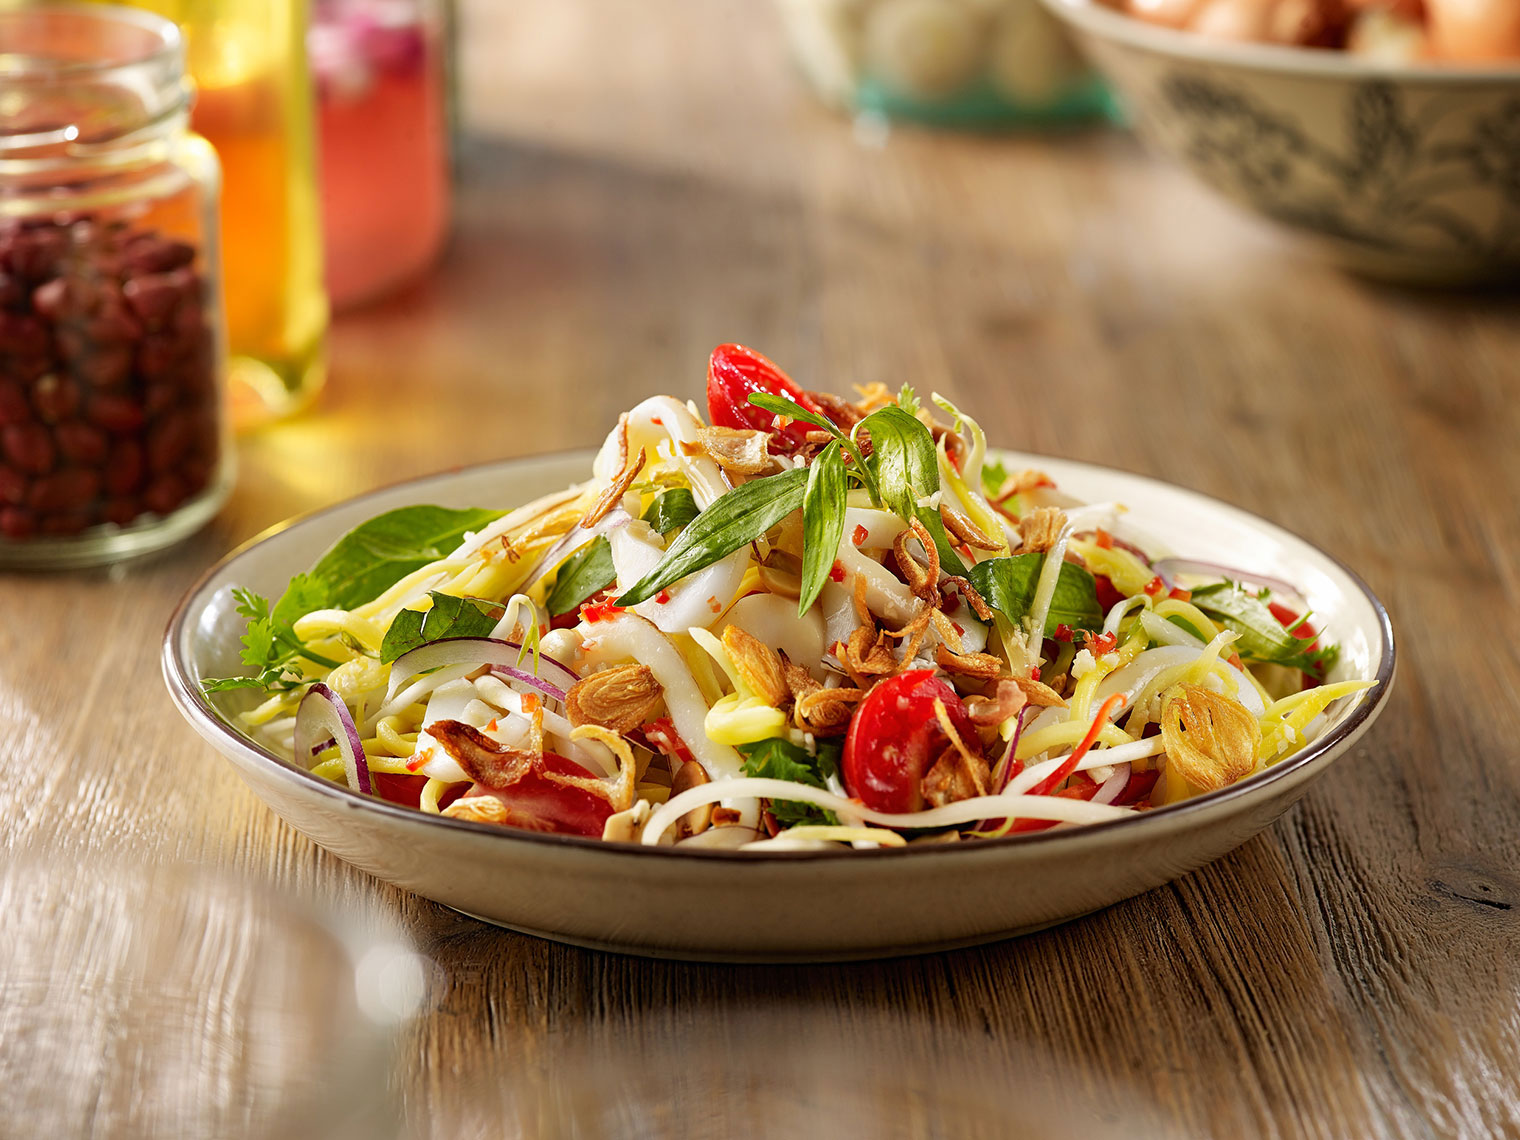 113_FE023_Vietnamese_food_cookbook_seafood_salad_BITE_Studio_Wing_Chan